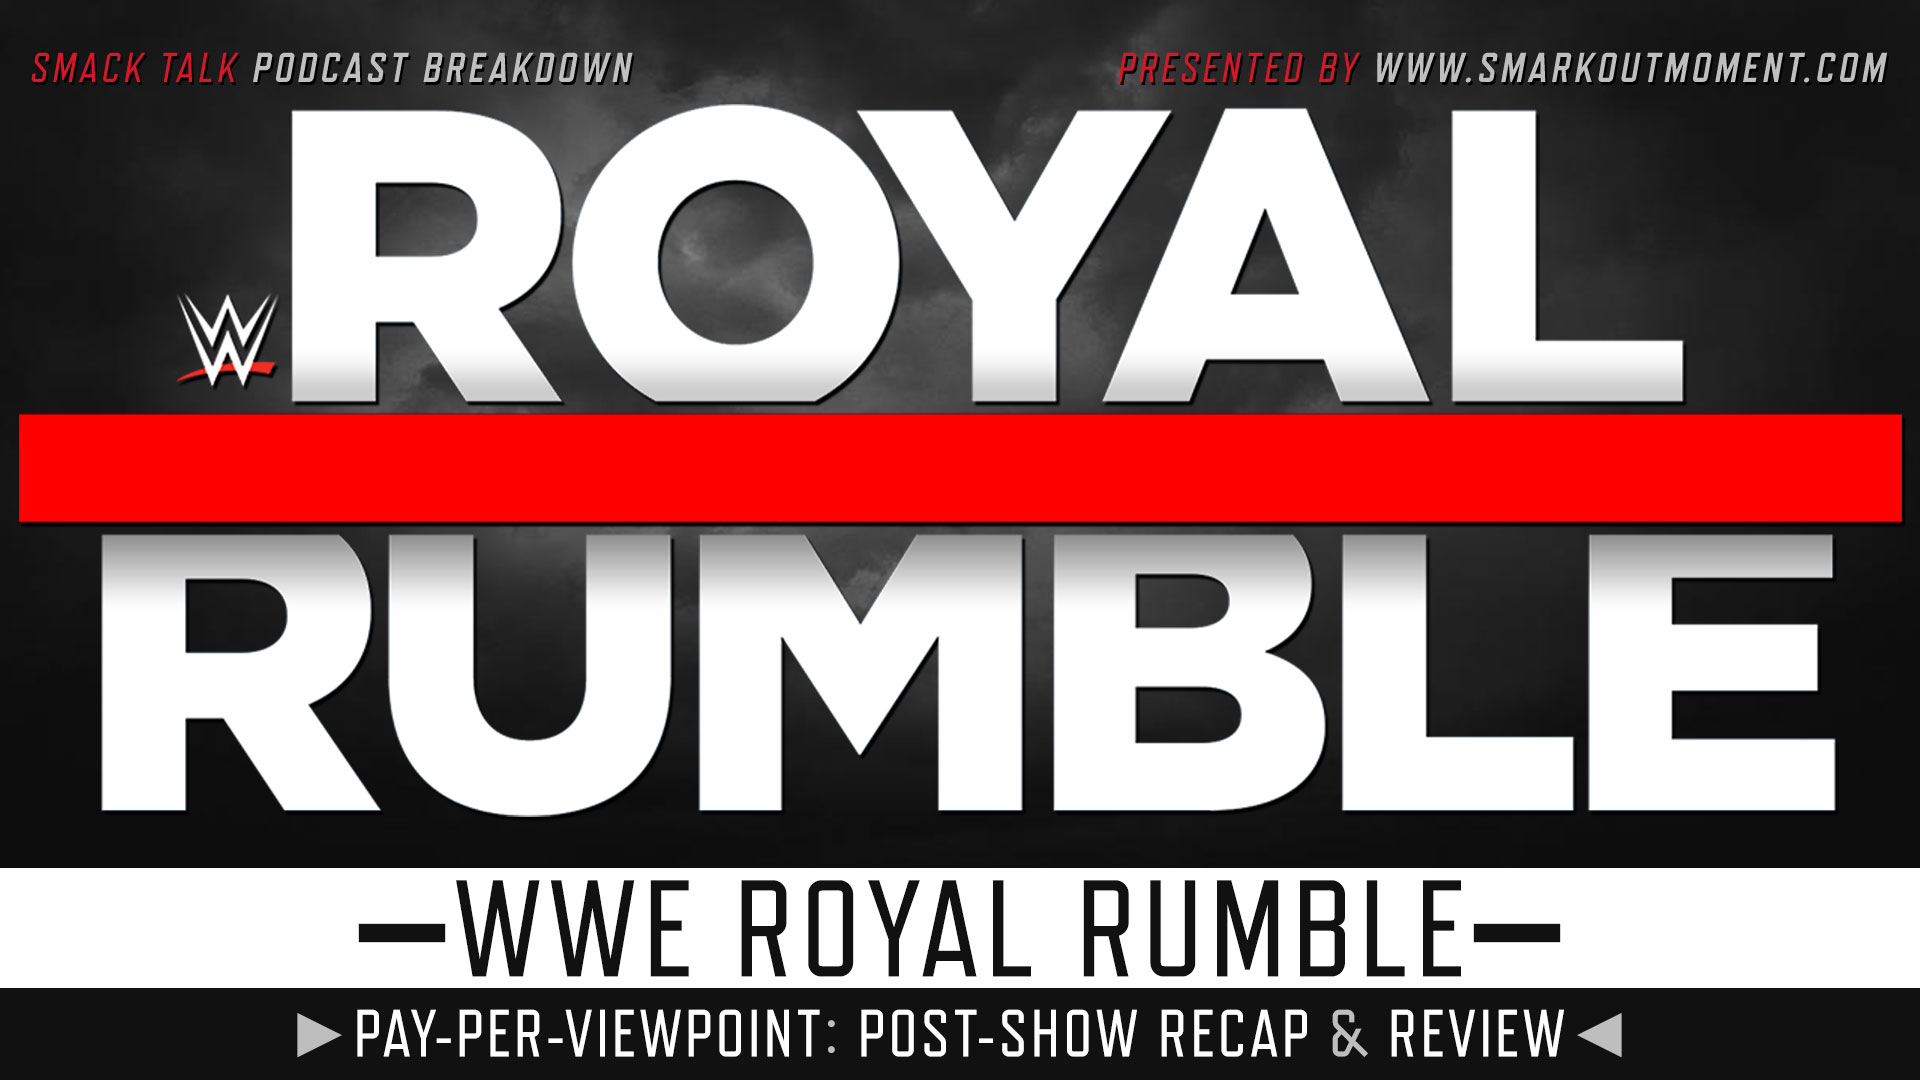 WWE Royal Rumble 2021 Recap and Review Podcast